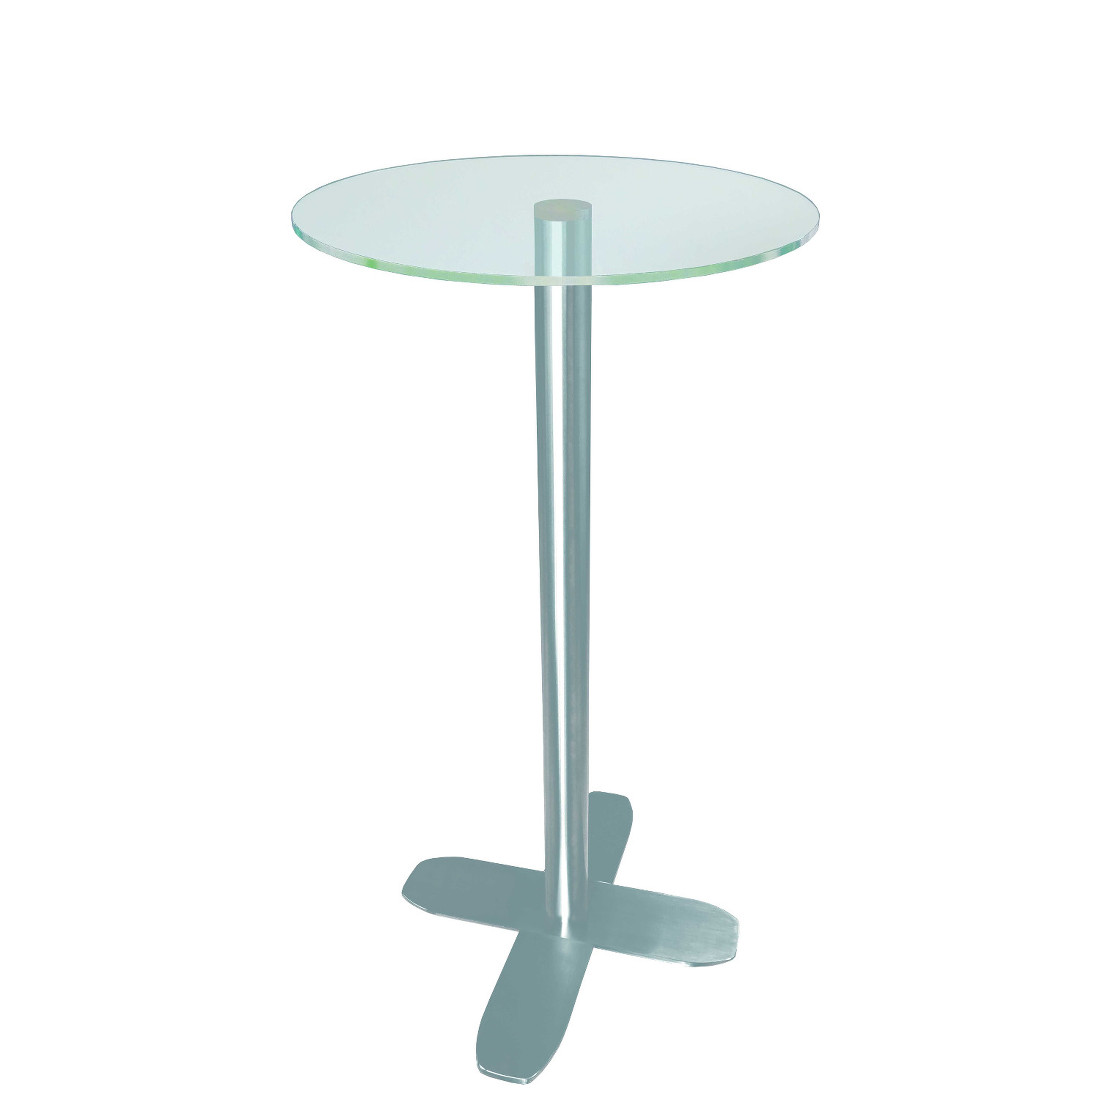 TABLE FRAME X-TYPE, TABLE BASE HEIGHT 690MM